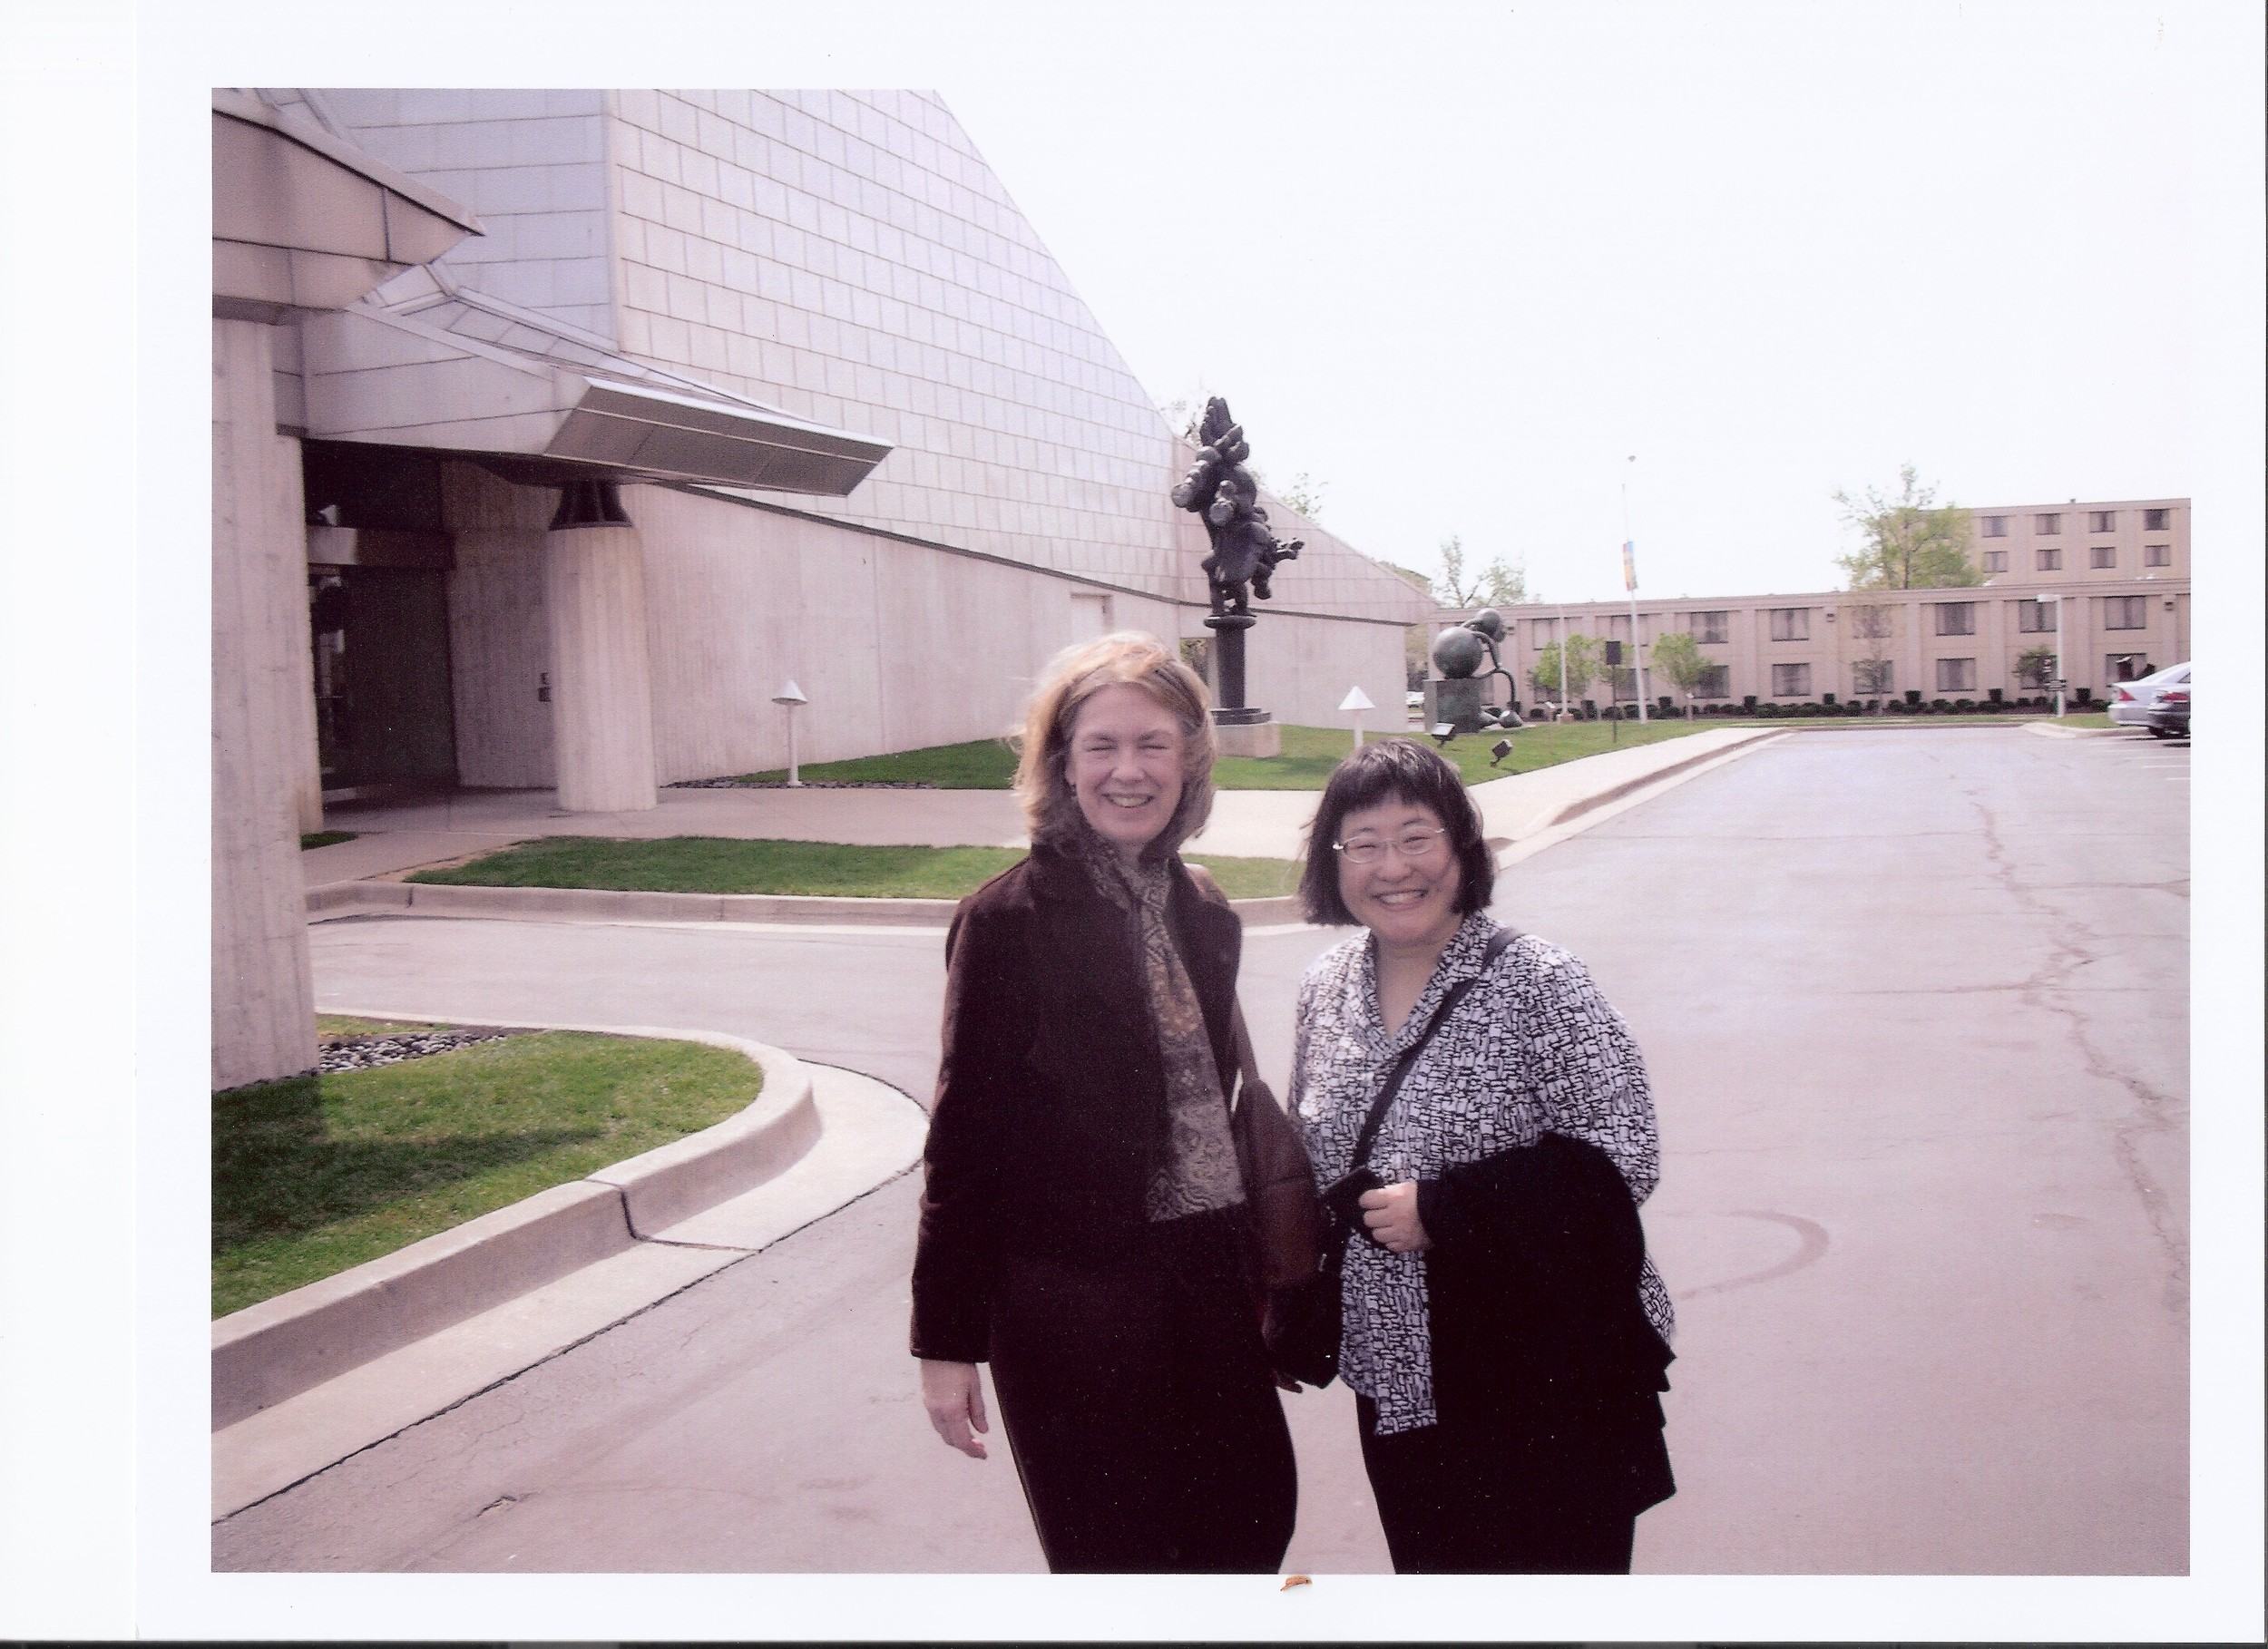 Chen Yi and Margaret Brouwer at University of Missouri - Kansas City